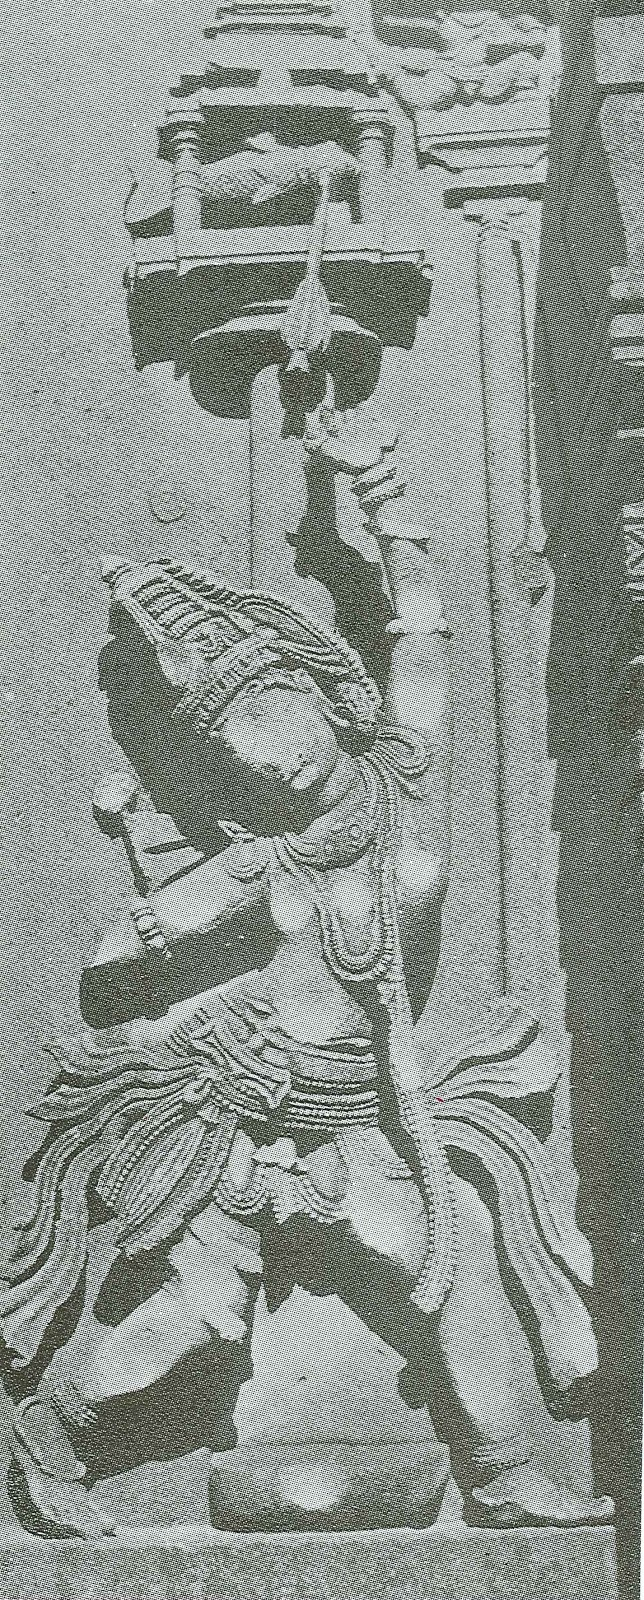 Arjuna's archery contest. A Hoysala (12th Century) sculpture from Belur. The contestant wears a decorative belt with fabric elements. From South Indian Paintings.